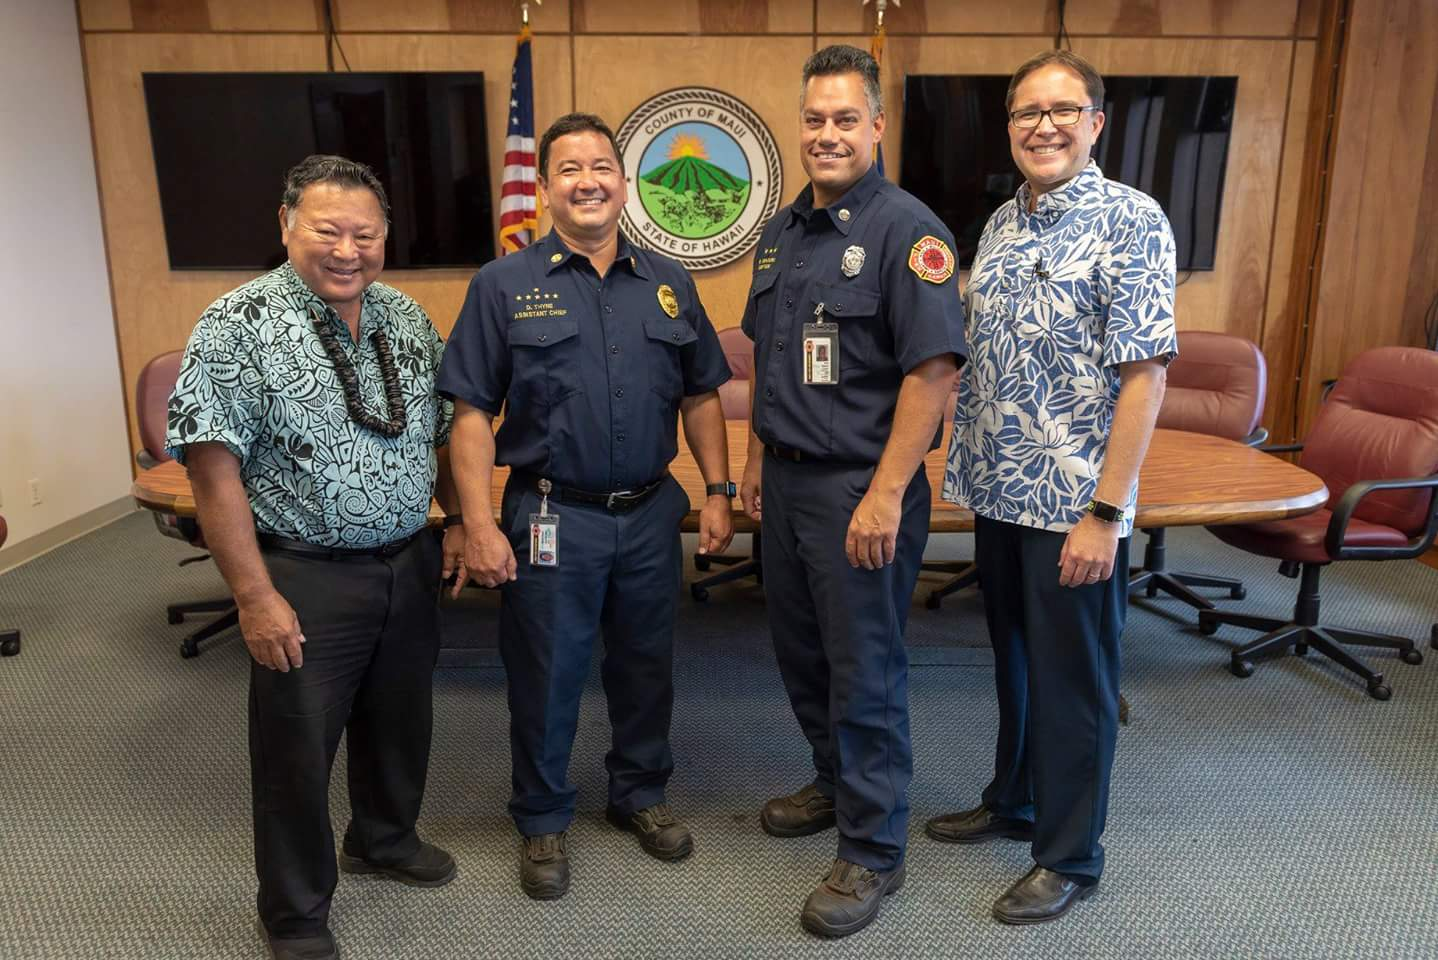 Thyne and Ventura Sworn in as Maui Fire Chief and Deputy